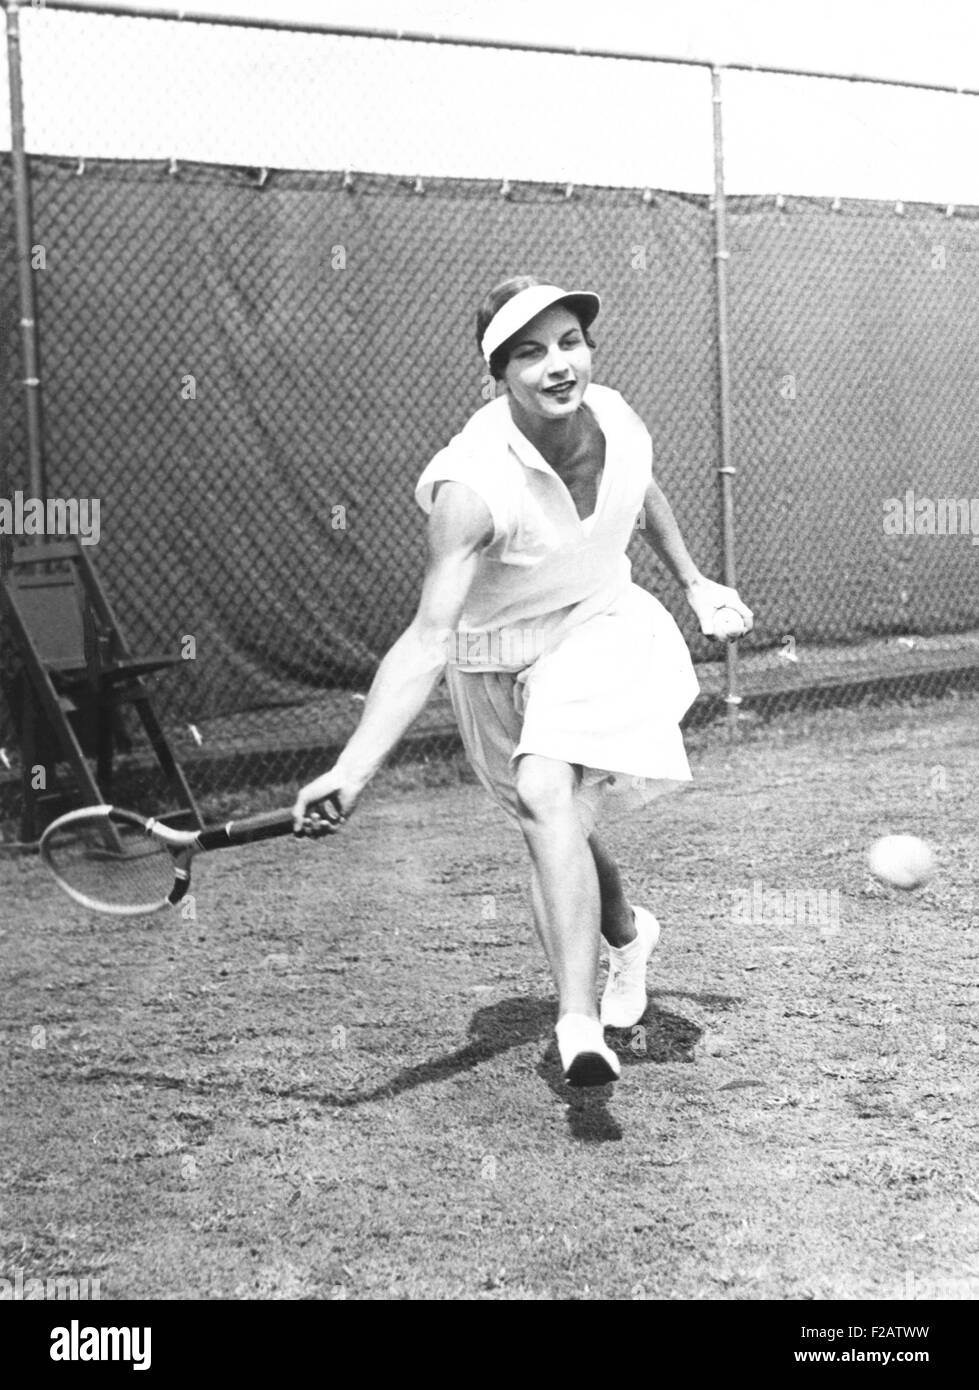 Helen Wills Moody in Doubles action at the U S Tennis